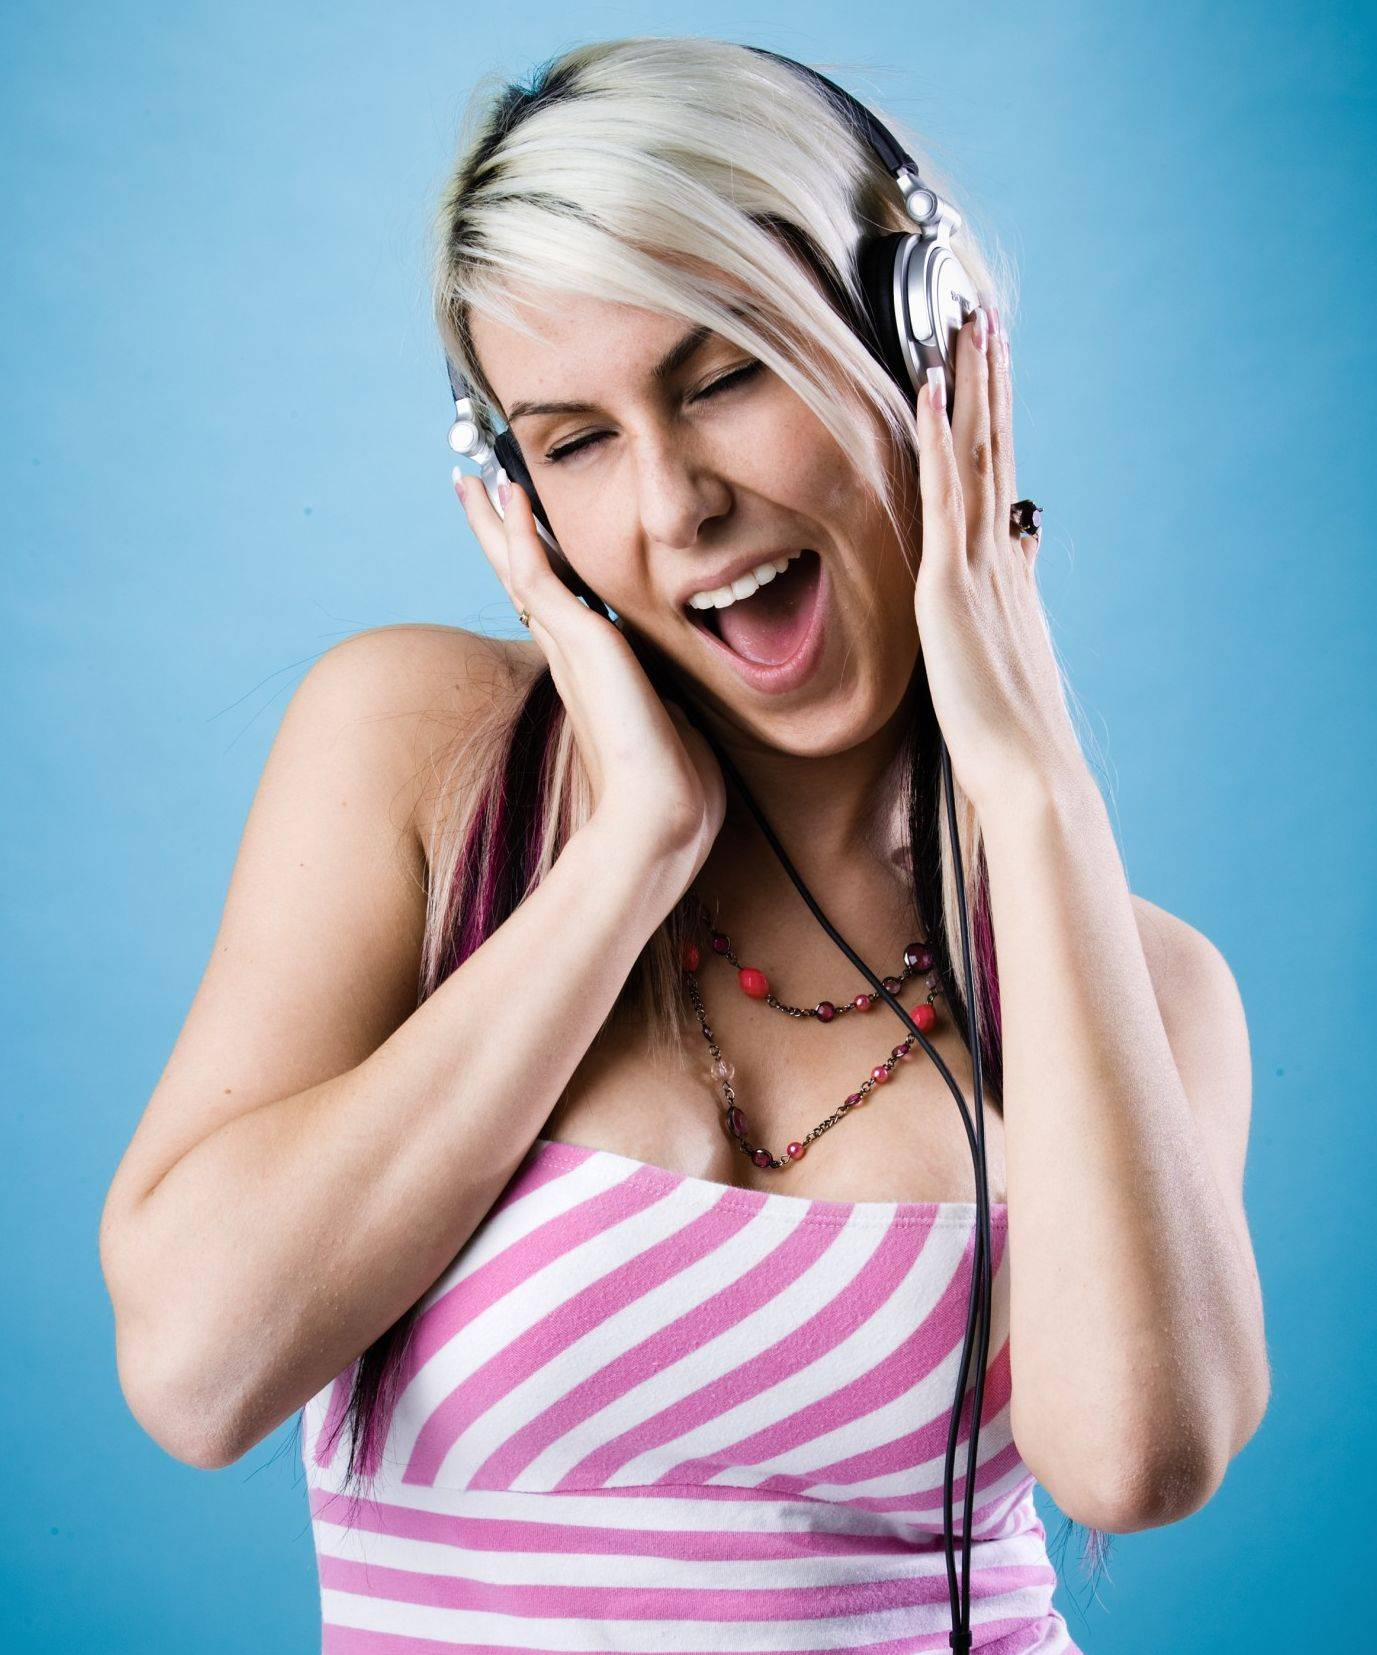 Scientists are finding that listening to music triggers a positive response within our brains.